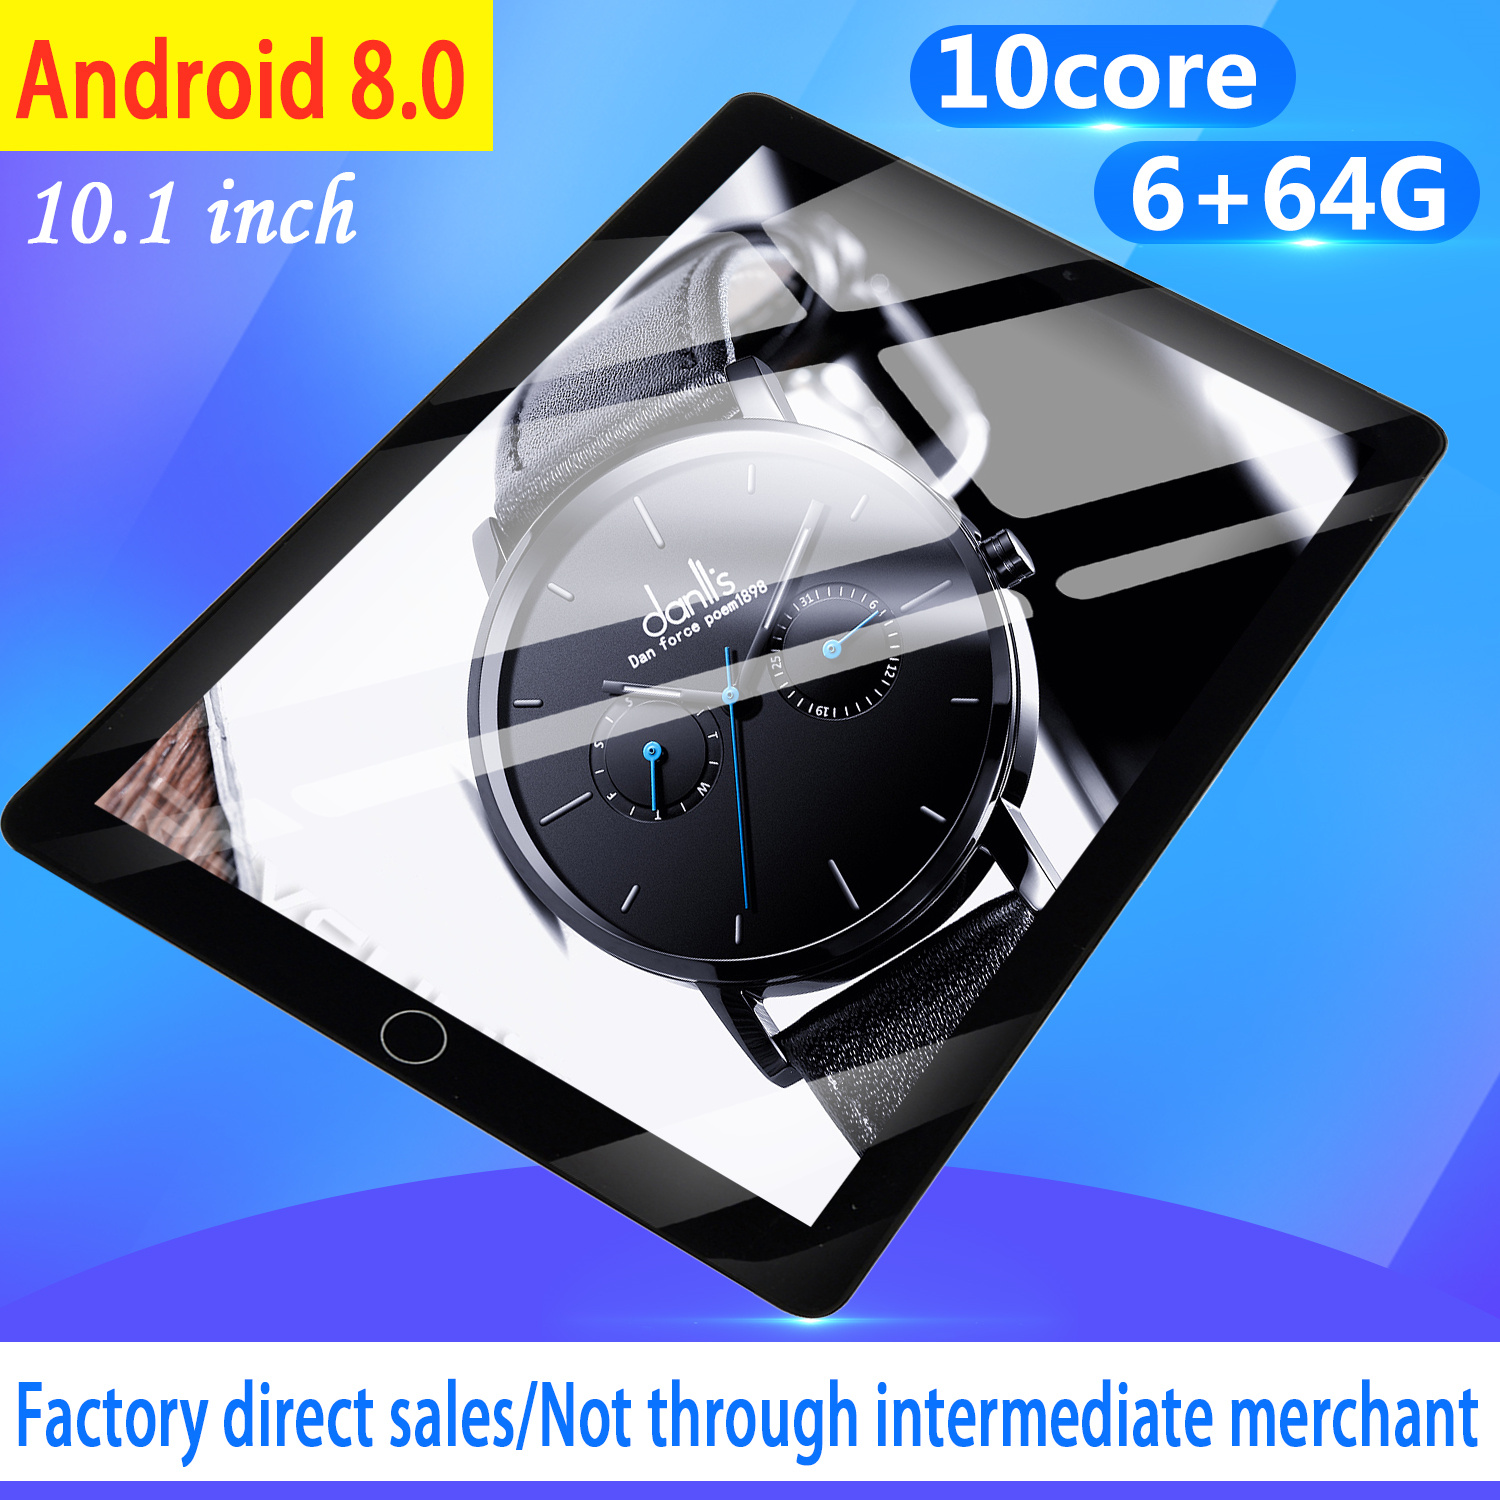 WiFi Tablet PC Screen 10 Inch Ten Core 6G+64G Android 8.0 Dual SIM Dual Camera Tablet GPS Phone Pad 2020